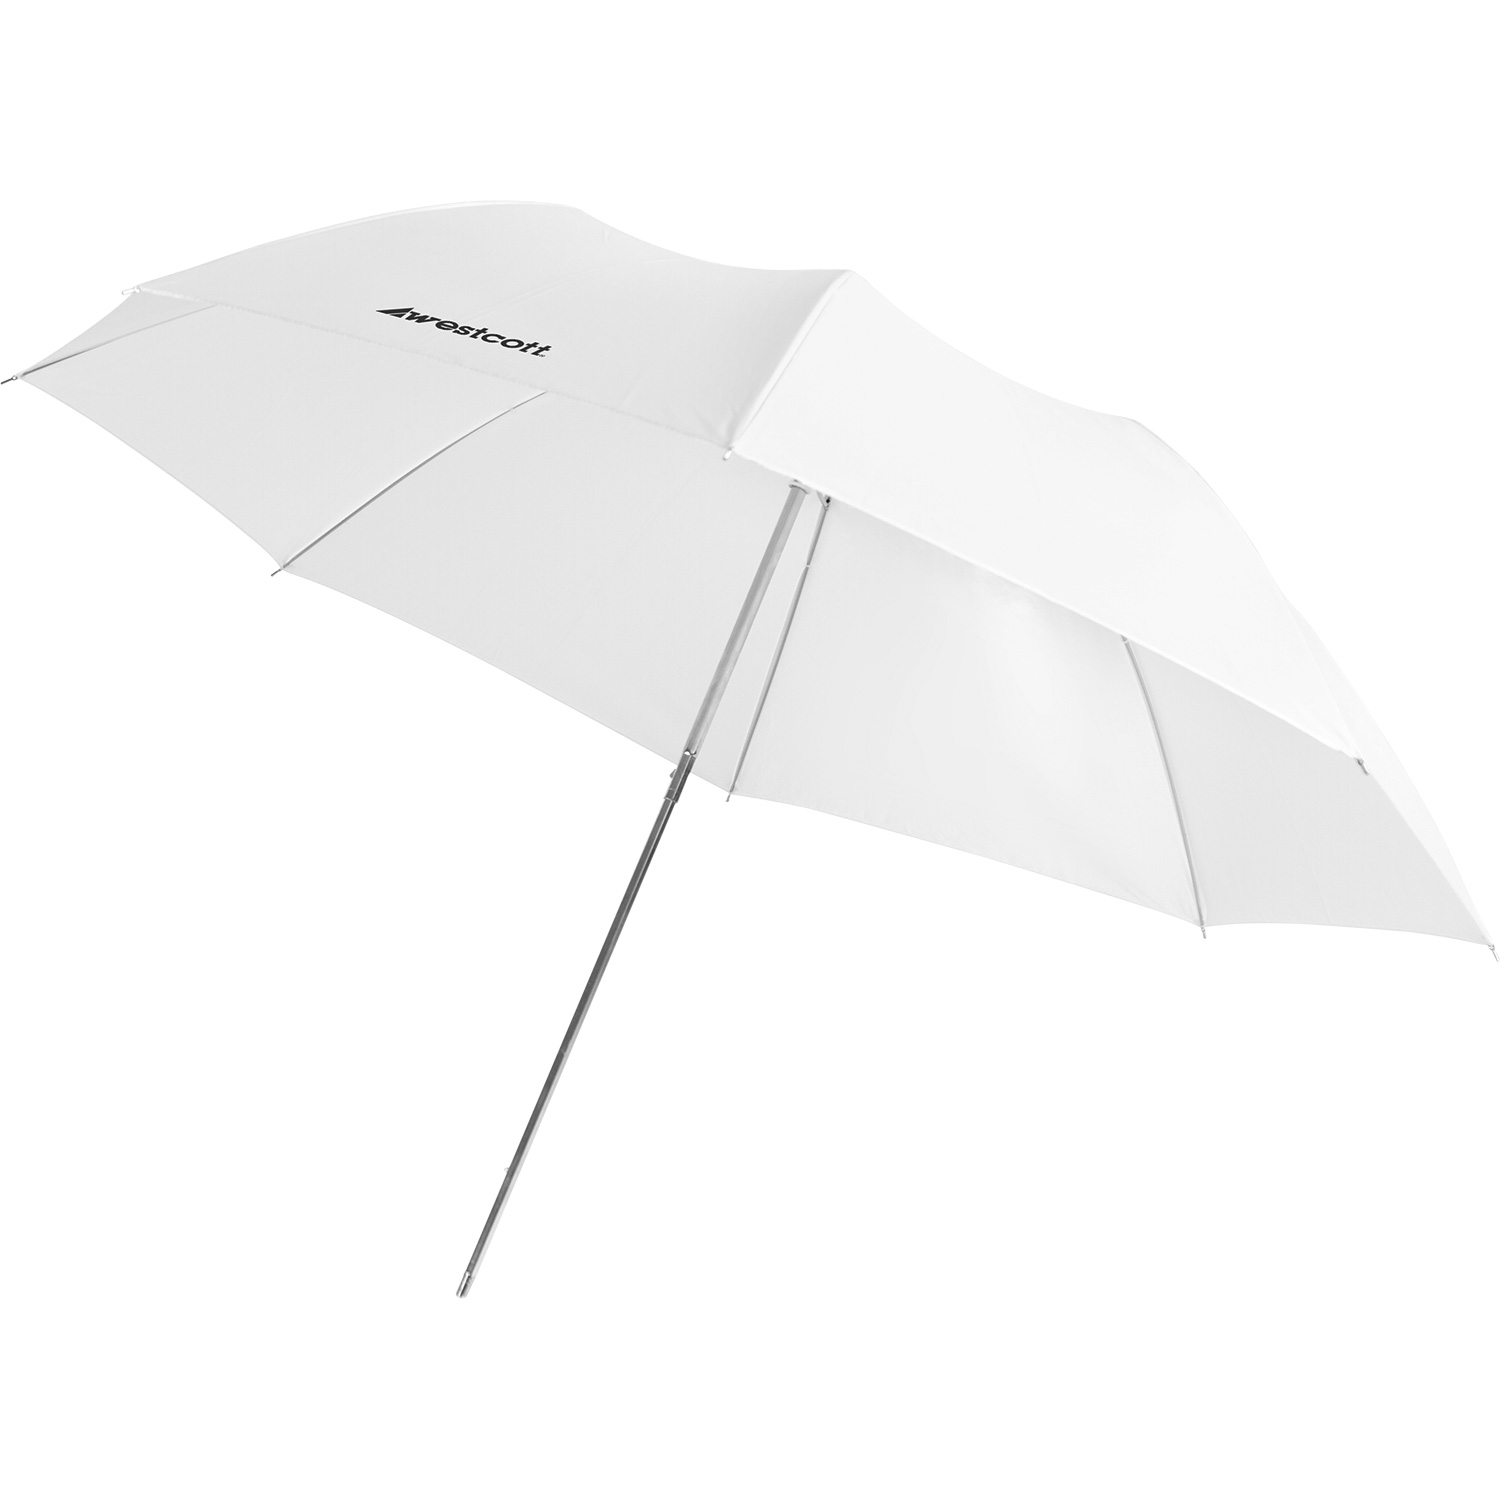 Compact Collapsible Umbrella - Optical White Satin Diffusion (43-in.)